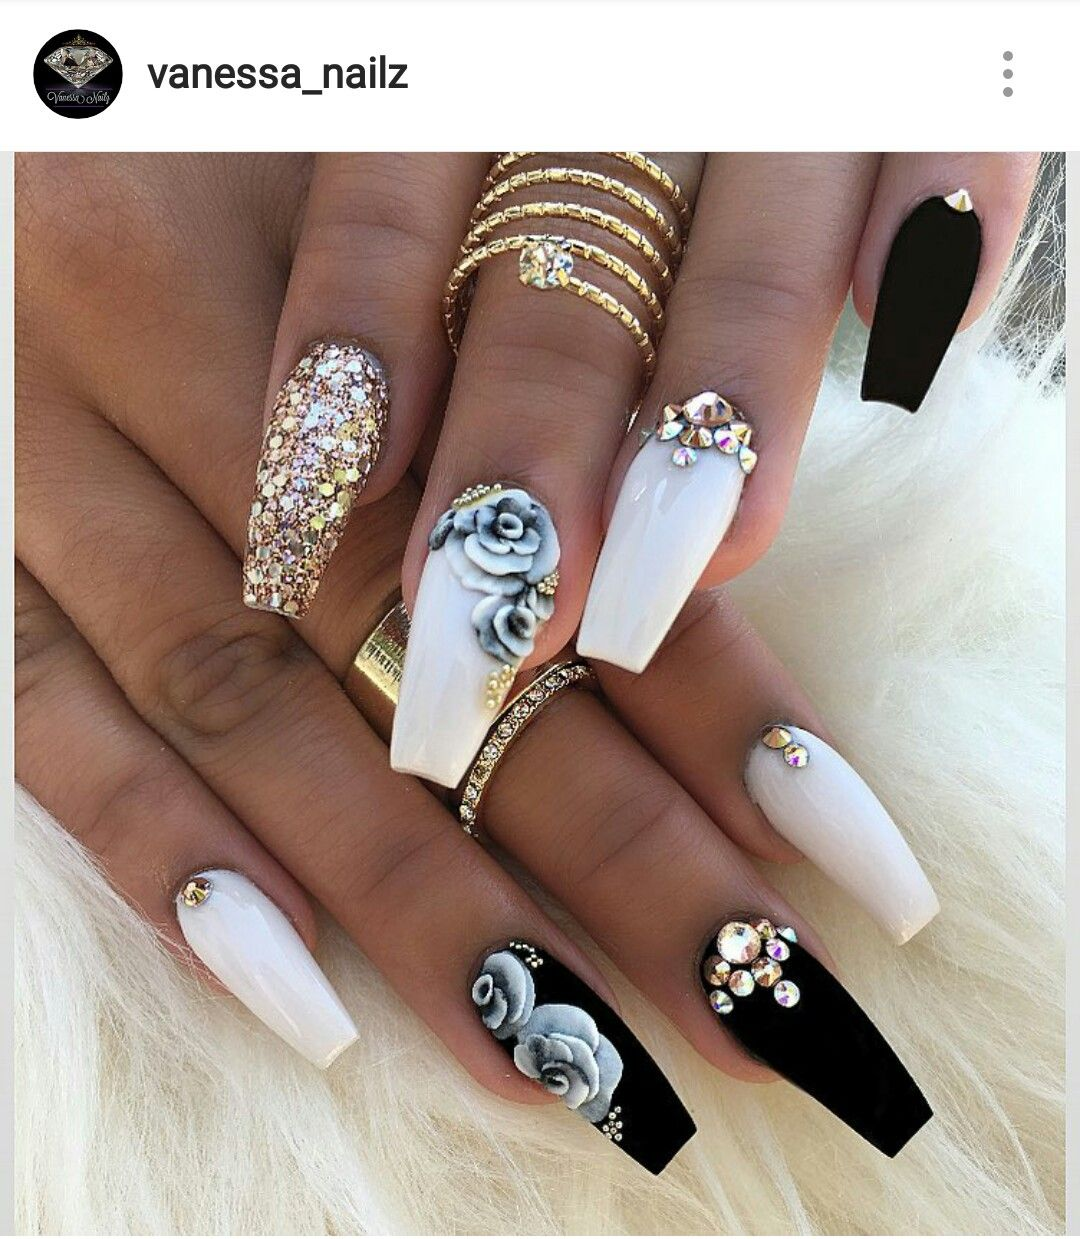 Black White Gold Nails By Vanessa Nailz On Ig Cute Acrylic Nails White Nails With Gold Gold Nails